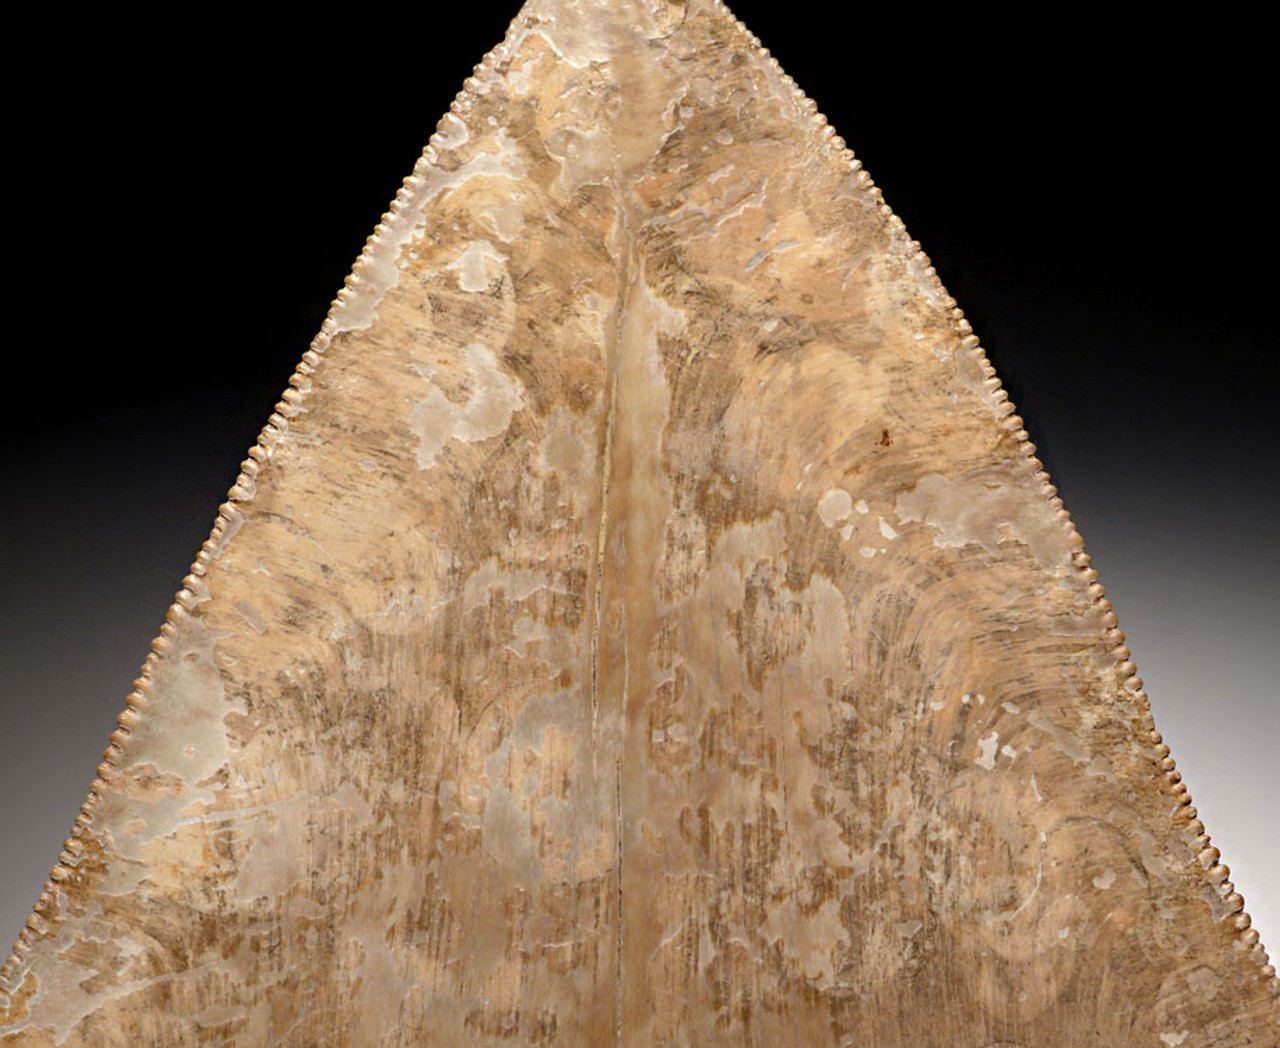 SH6-336 - INVESTMENT GRADE SPOTTED IVORY WHITE 4.8 INCH MEGALODON SHARK TOOTH WITH INCREDIBLE ENAMEL PATTERNS